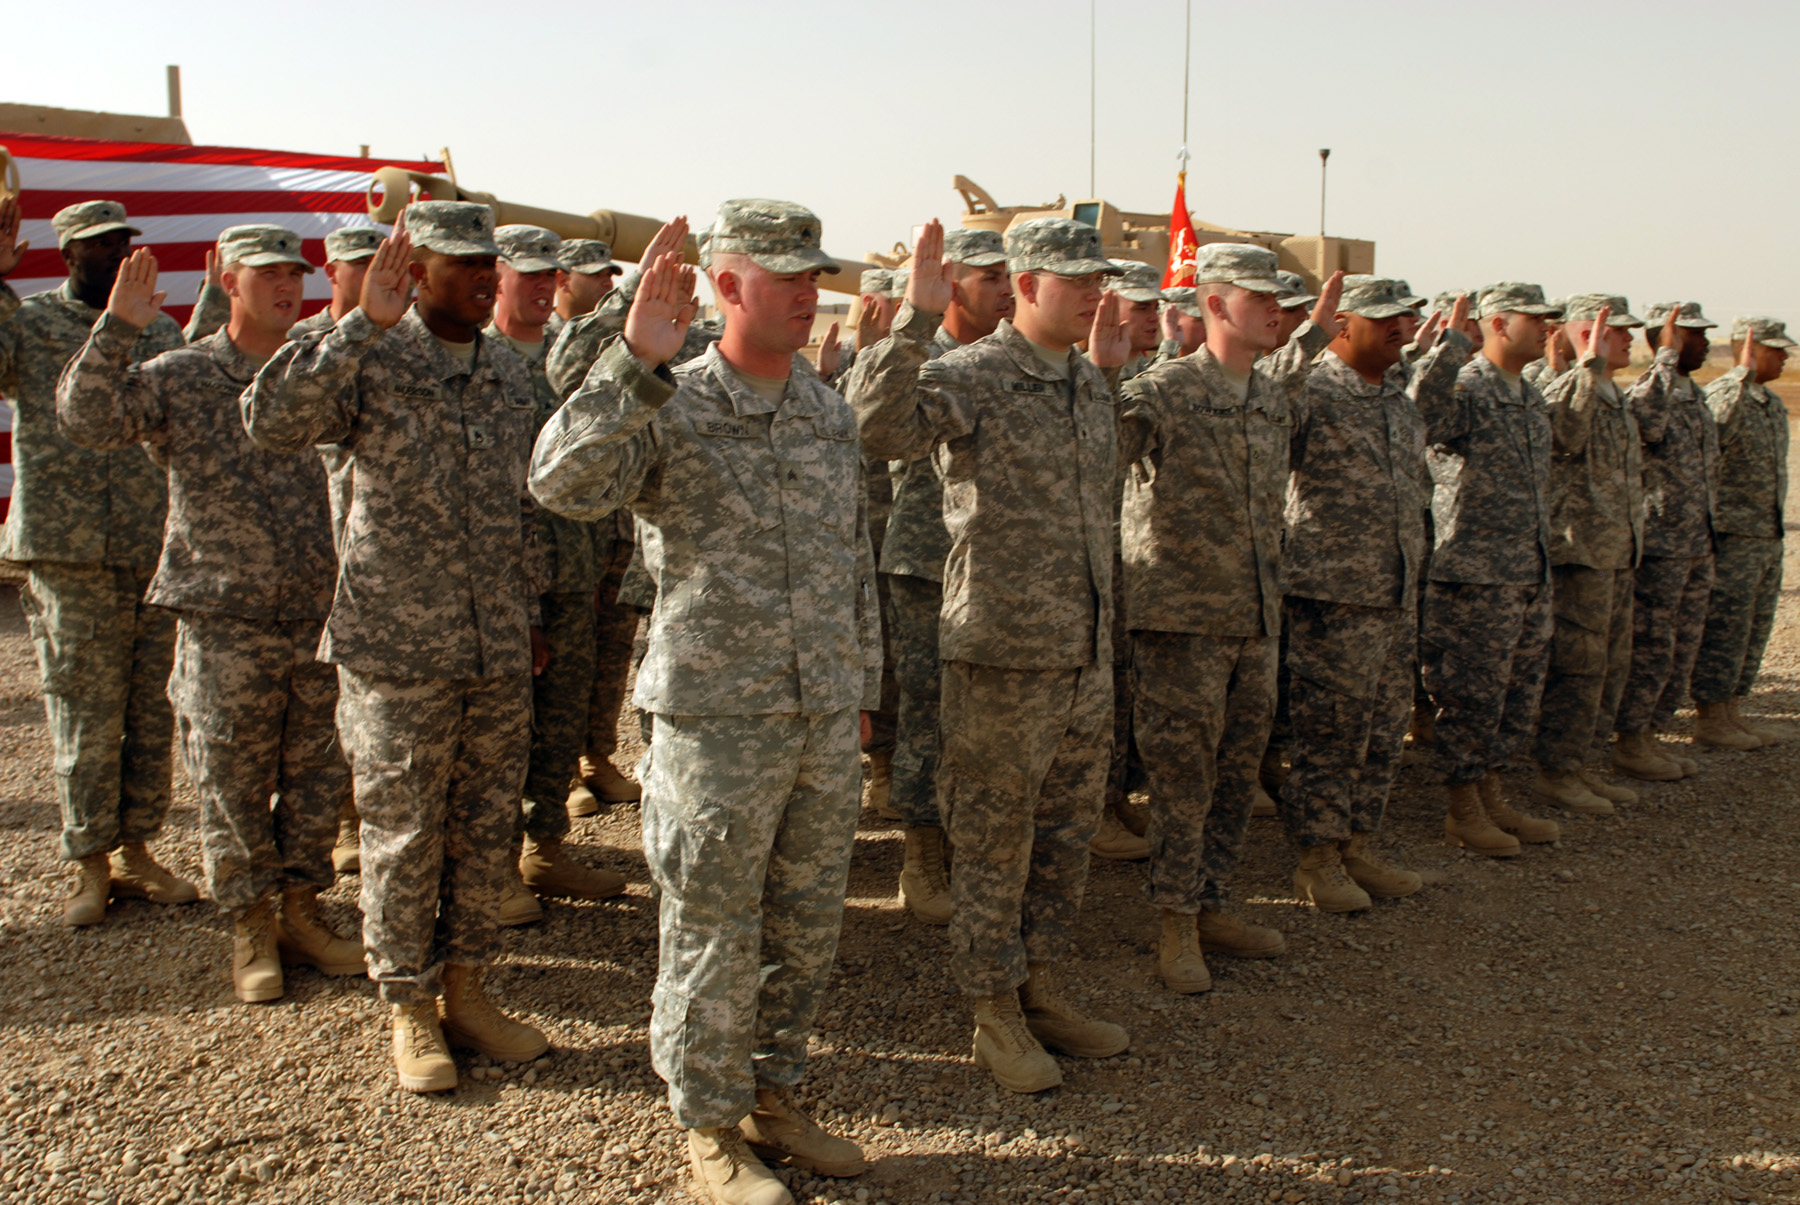 http://upload.wikimedia.org/wikipedia/commons/5/5f/US_Army_52421_CAMP_TAJI,_Iraq_-_Forty-one_Soldiers_of_the_1st_Battalion,_82nd_Field_Artillery_Regiment,_1st_Brigade_Combat_Team,_1st_Cavalry_Division,_raise_their_right_hands_during_a_re-enlistment_ceremony_held_at.jpg